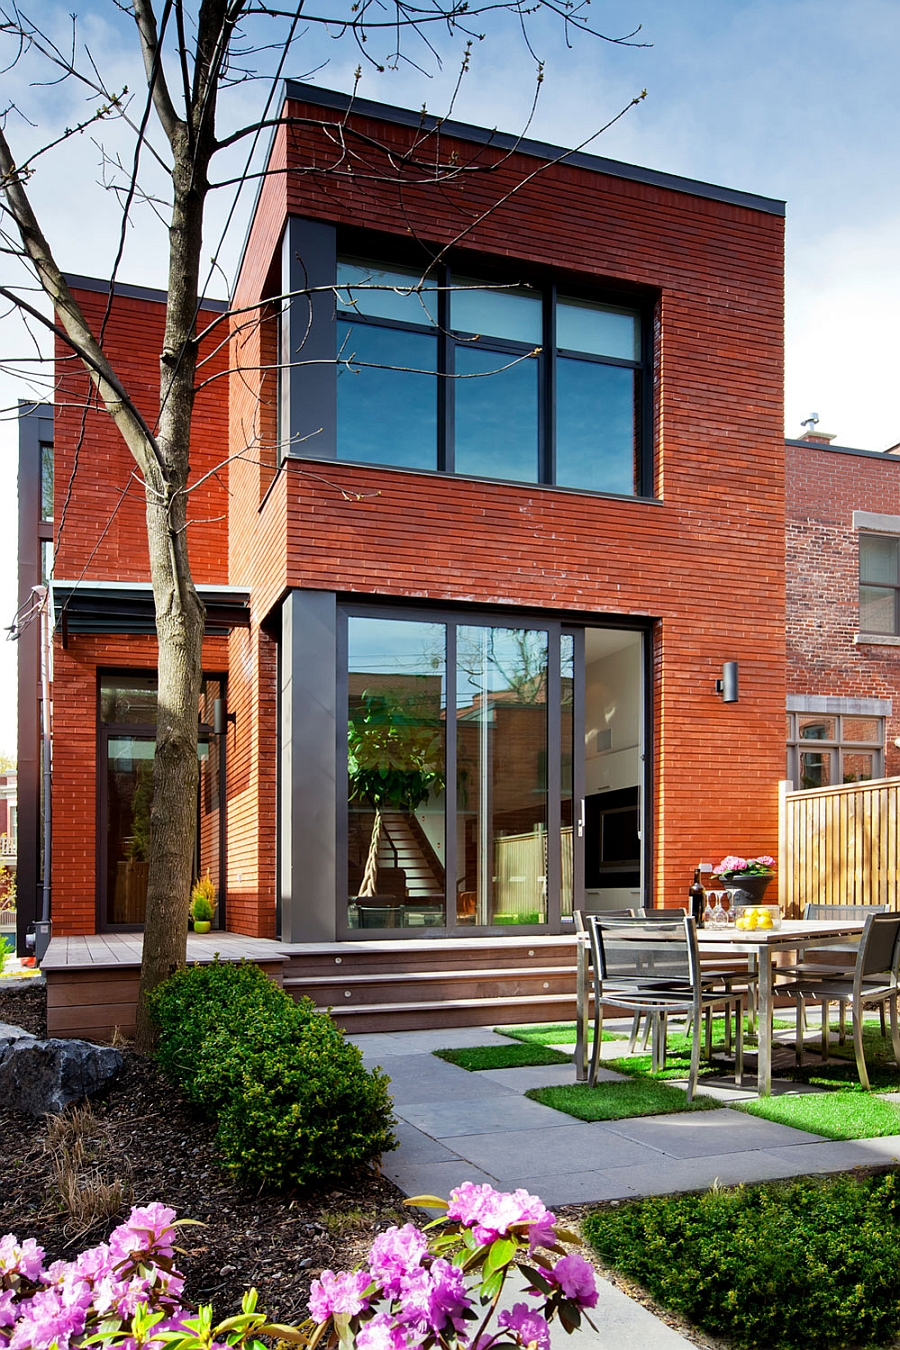 Unique Exterior of the house blends with the surrounding homes in the historic neighborhood Ingenious Montreal Residence Blends Heritage Appeal With Modern Flair